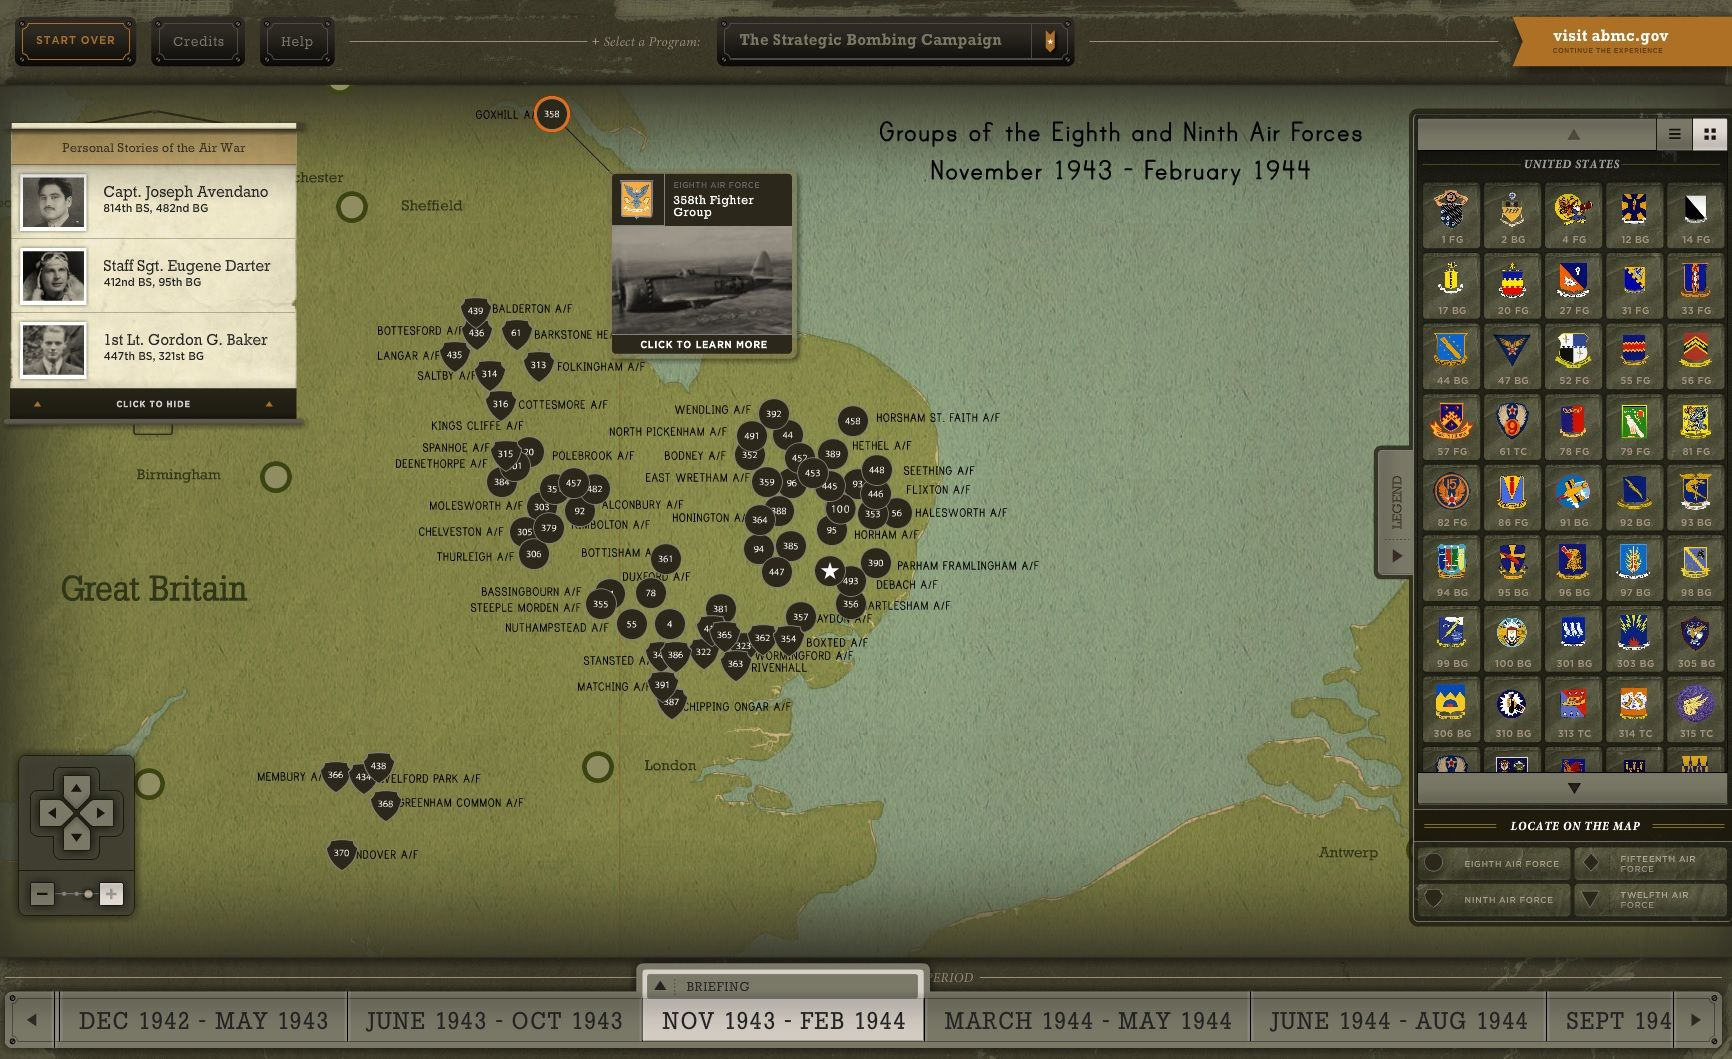 During World War II, Allied strategic bombing destroyed crucial German infrastructure, degraded critical logistics, damaged civilian morale, and forced the German air force into losing battles. It contributed heavily to Germany's eventual surrender in May 1945. To help tell this story and explain its significance, the American Battle Monuments Commission has released theStrategic Bombing Campaignonline interactive. This free, digital tool covers all aspects of the campaign, and allows the…